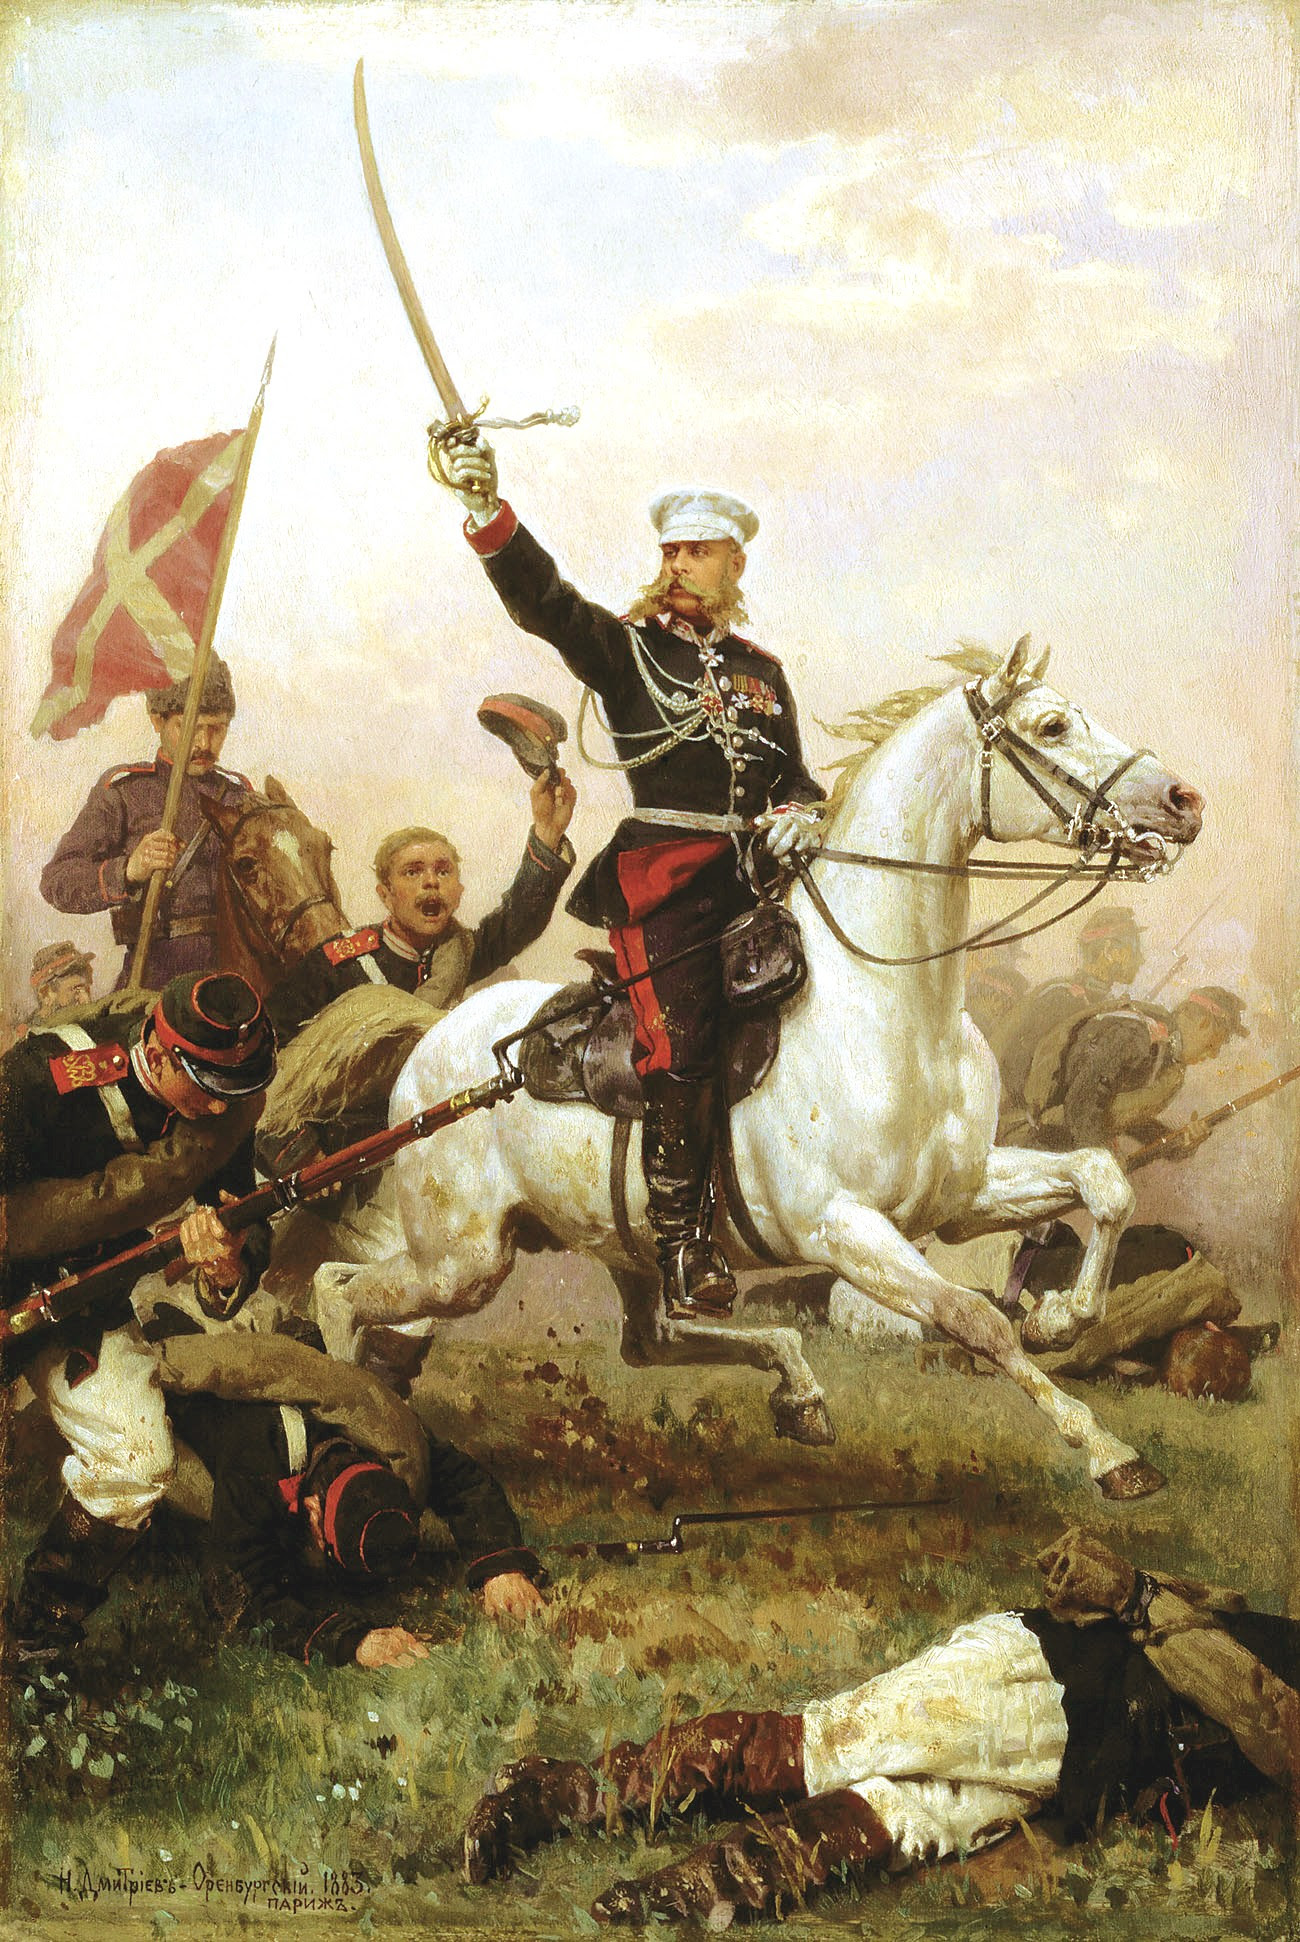 http://01varvara.files.wordpress.com/2008/02/nikolai-dmitriev-orenburgsky-general-nikolai-skobolyov-leads-the-way-1883.jpg